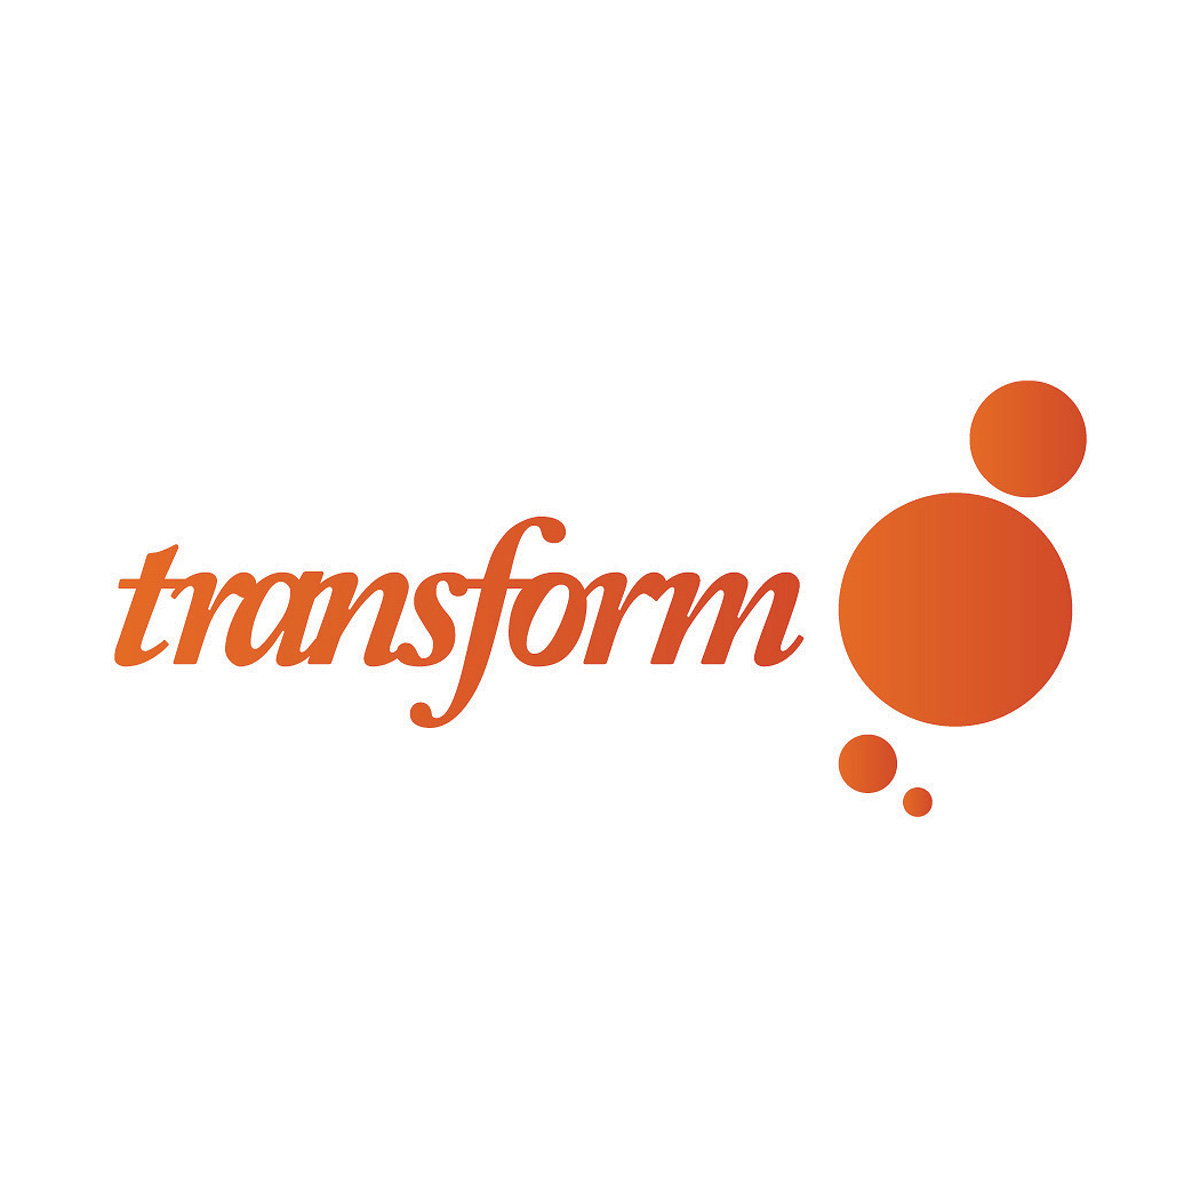 2017 ASID Foundation Transform Grant Recipients Announced